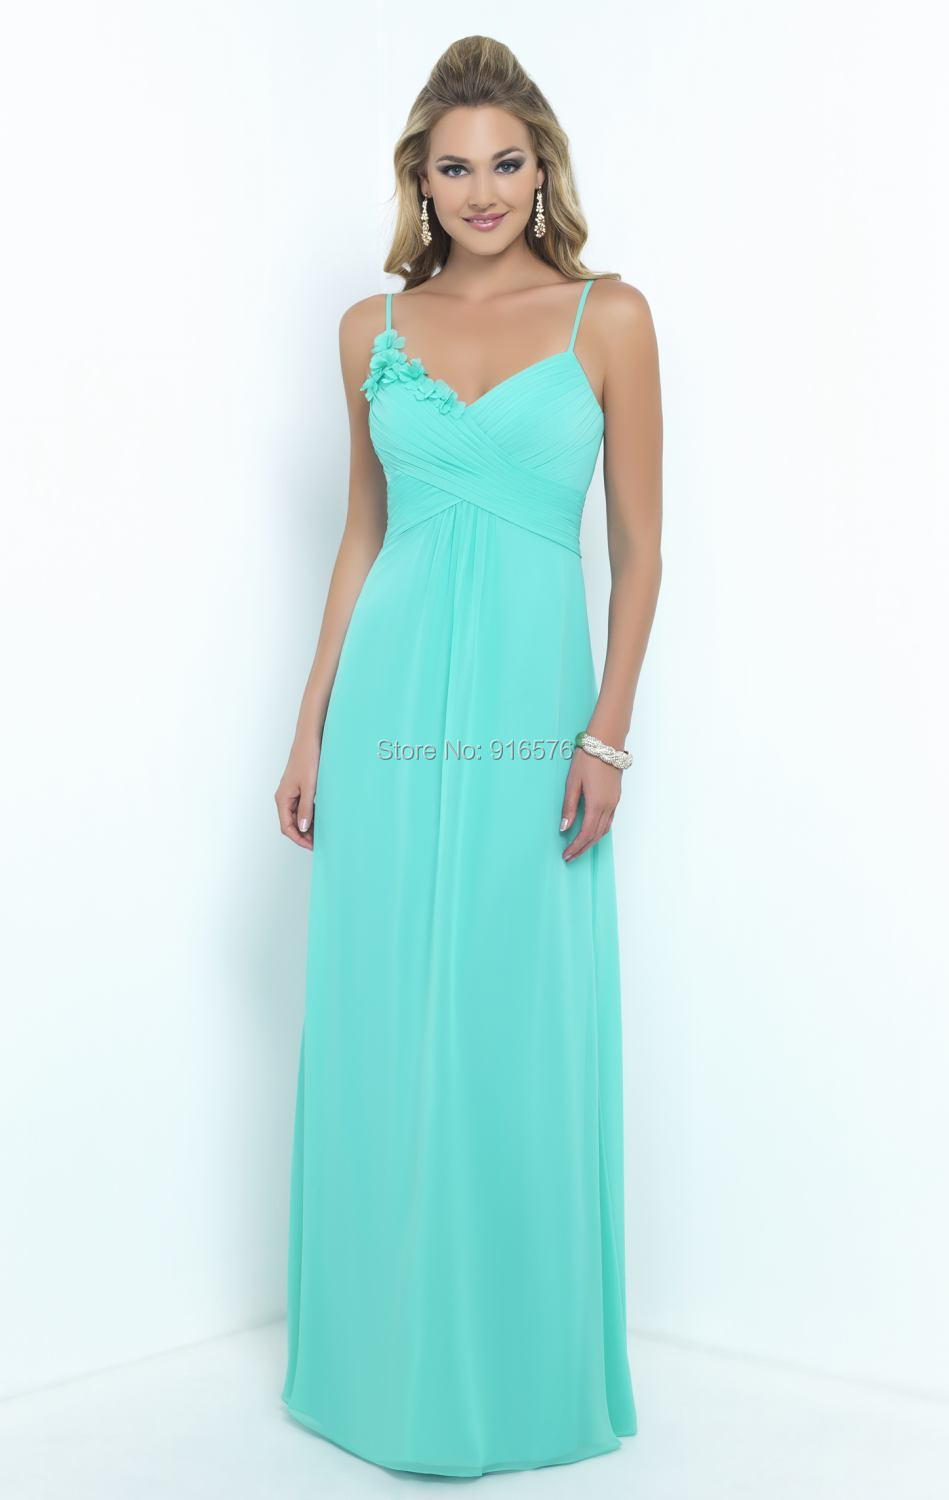 Aliexpress buy seamist long bridesmaid dress with spaghetti aliexpress buy seamist long bridesmaid dress with spaghetti straps brides maid dresses empire waistline floor length from reliable dress racing ombrellifo Images